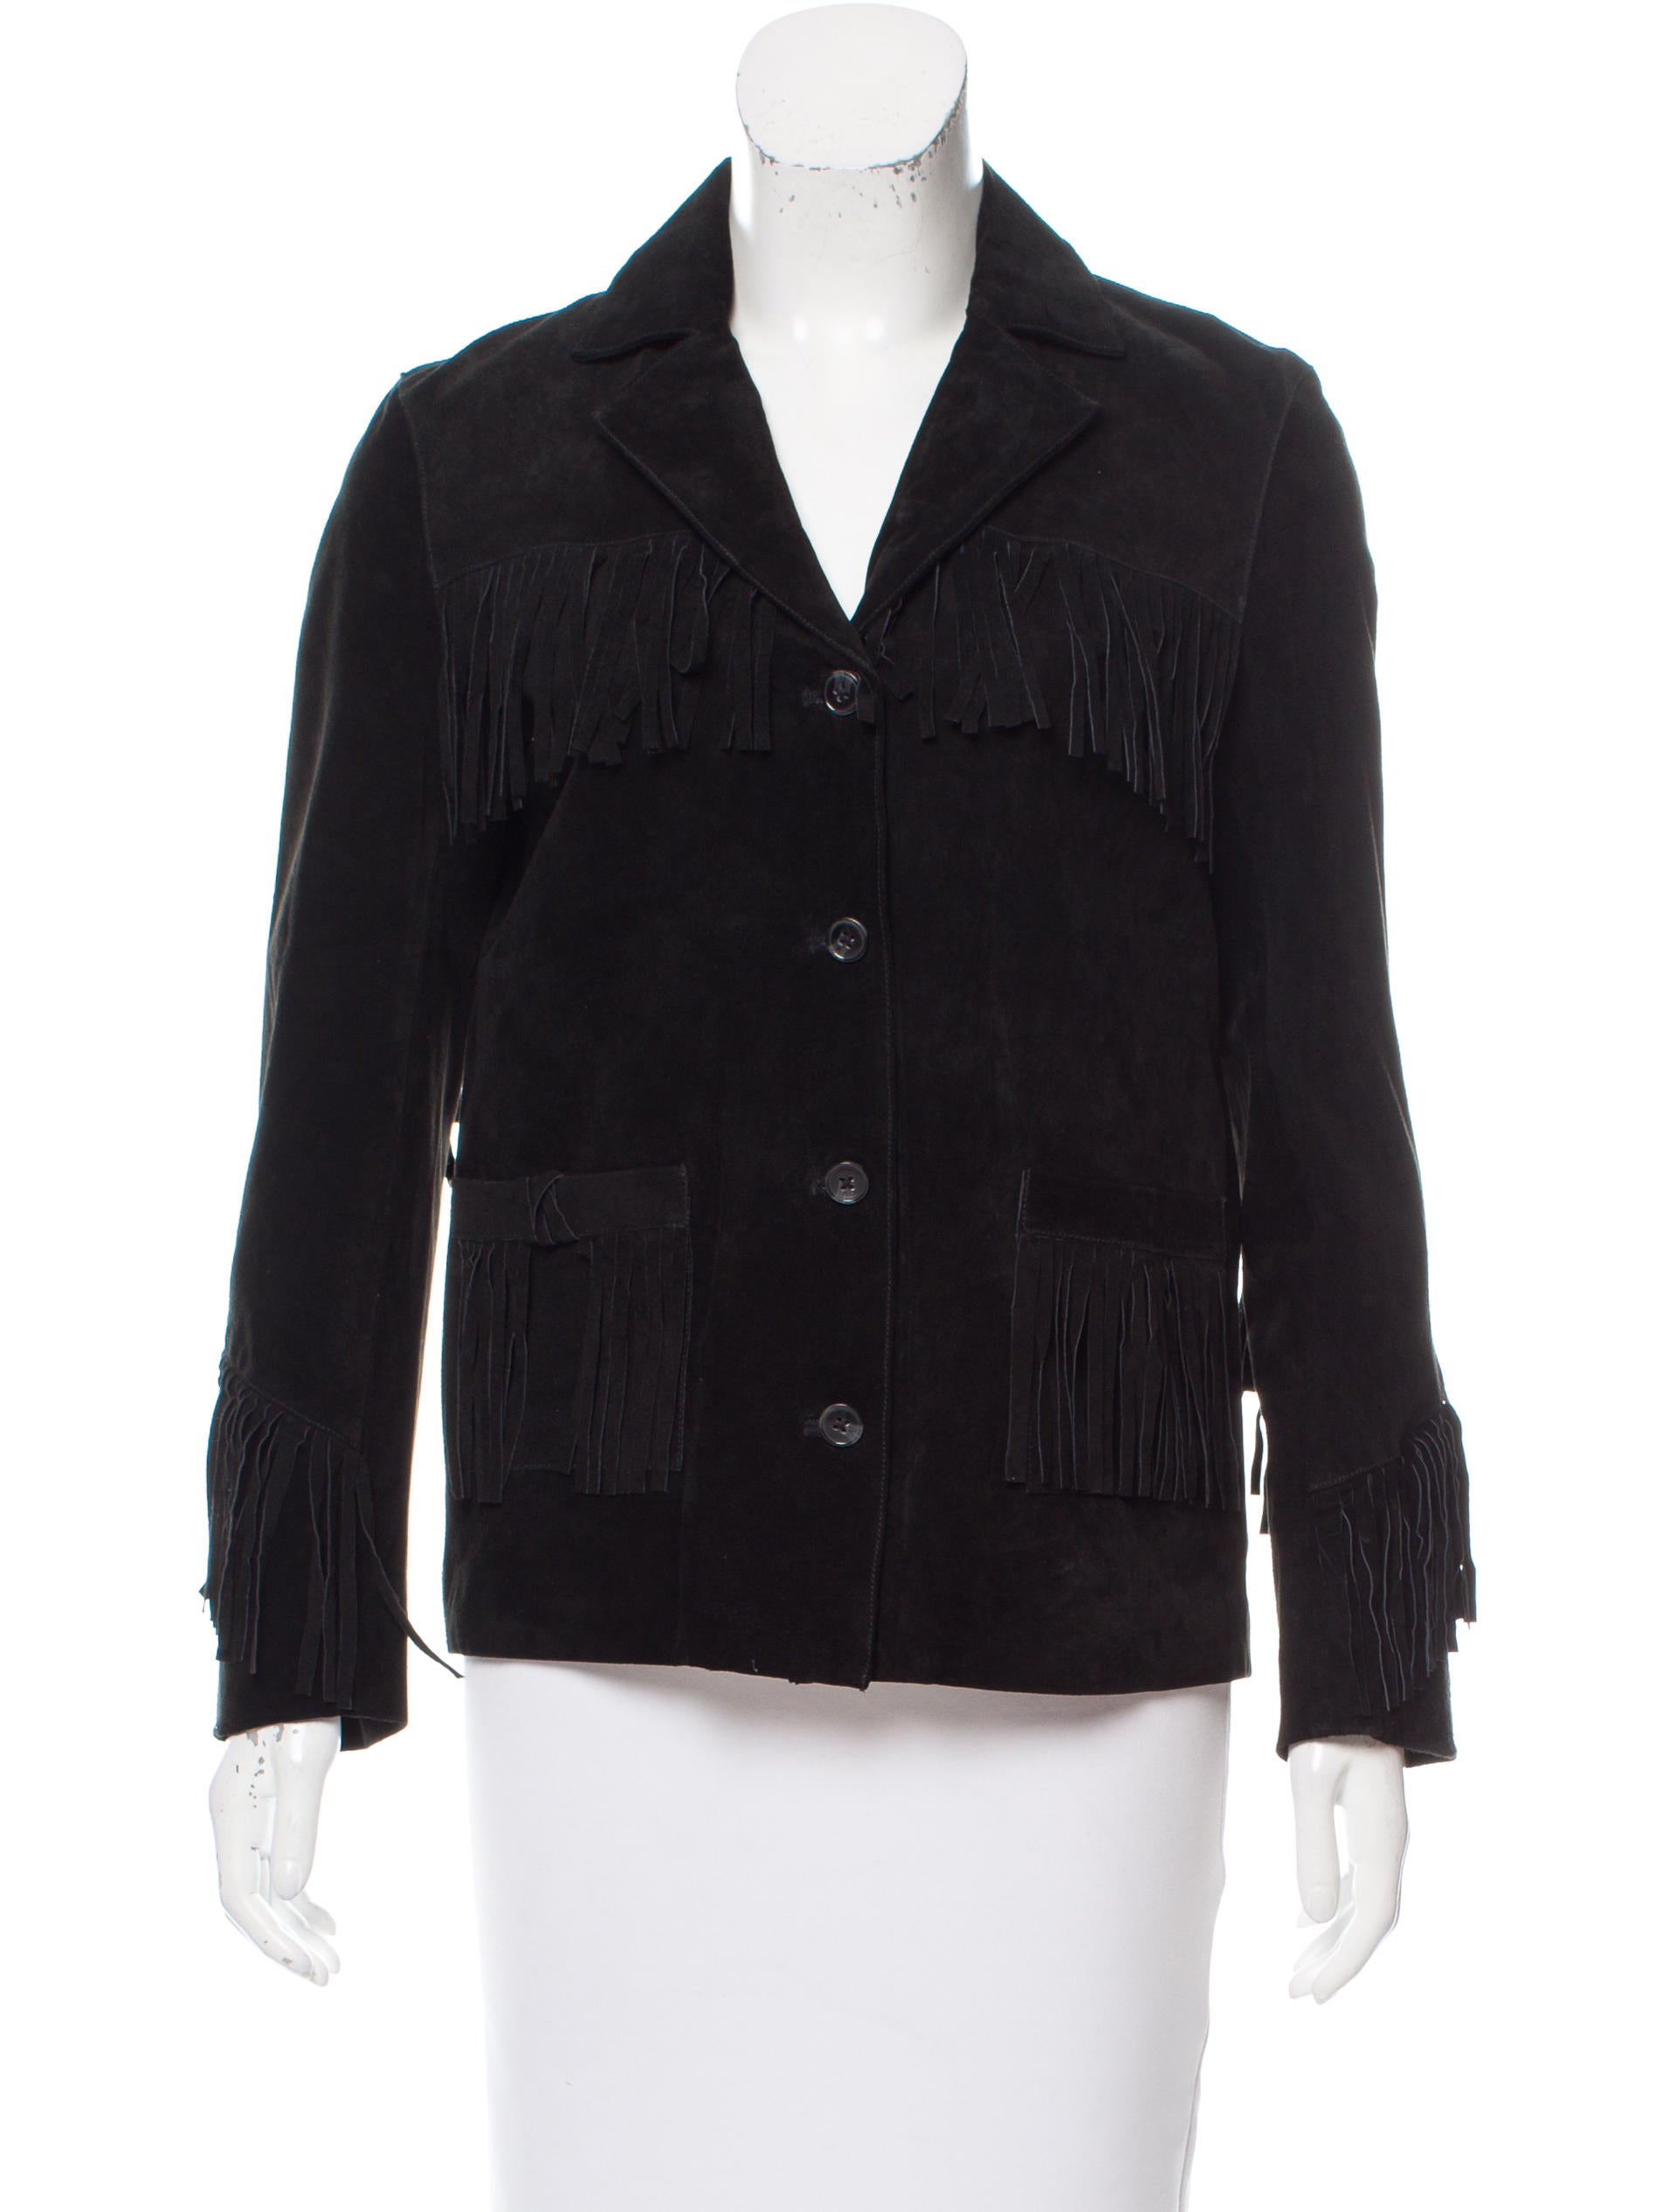 $ Long Fringe Embroidered Coat Boar suede #67 Espresso. This classic stylish coat features a silver thread design with turquoise studs. It has hidden side entry pockets and a hook and eye closure.